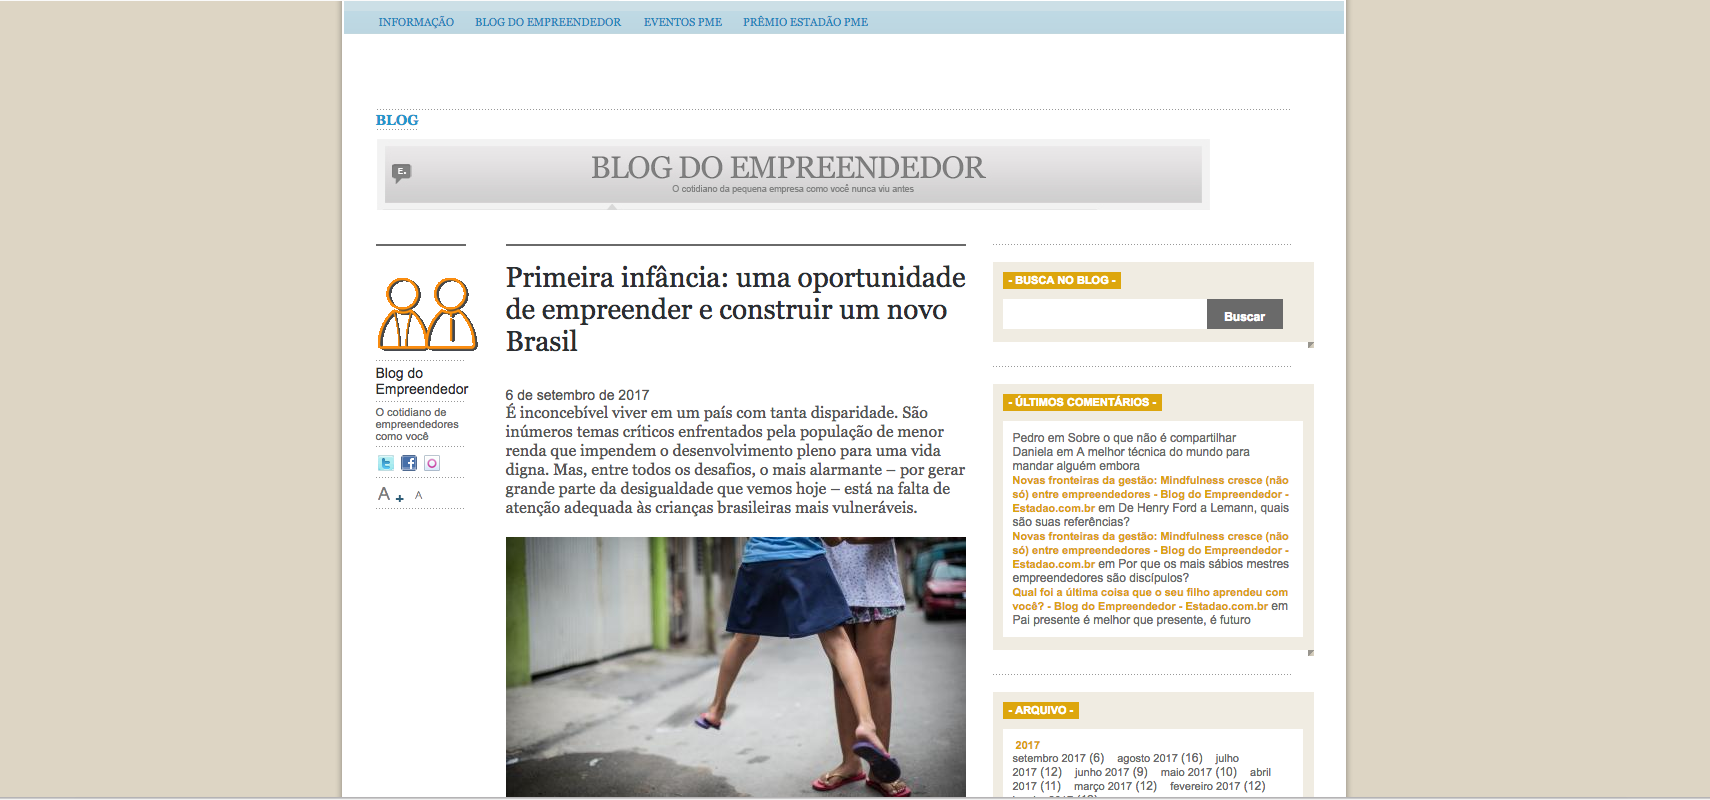 Blog do Empreendedor